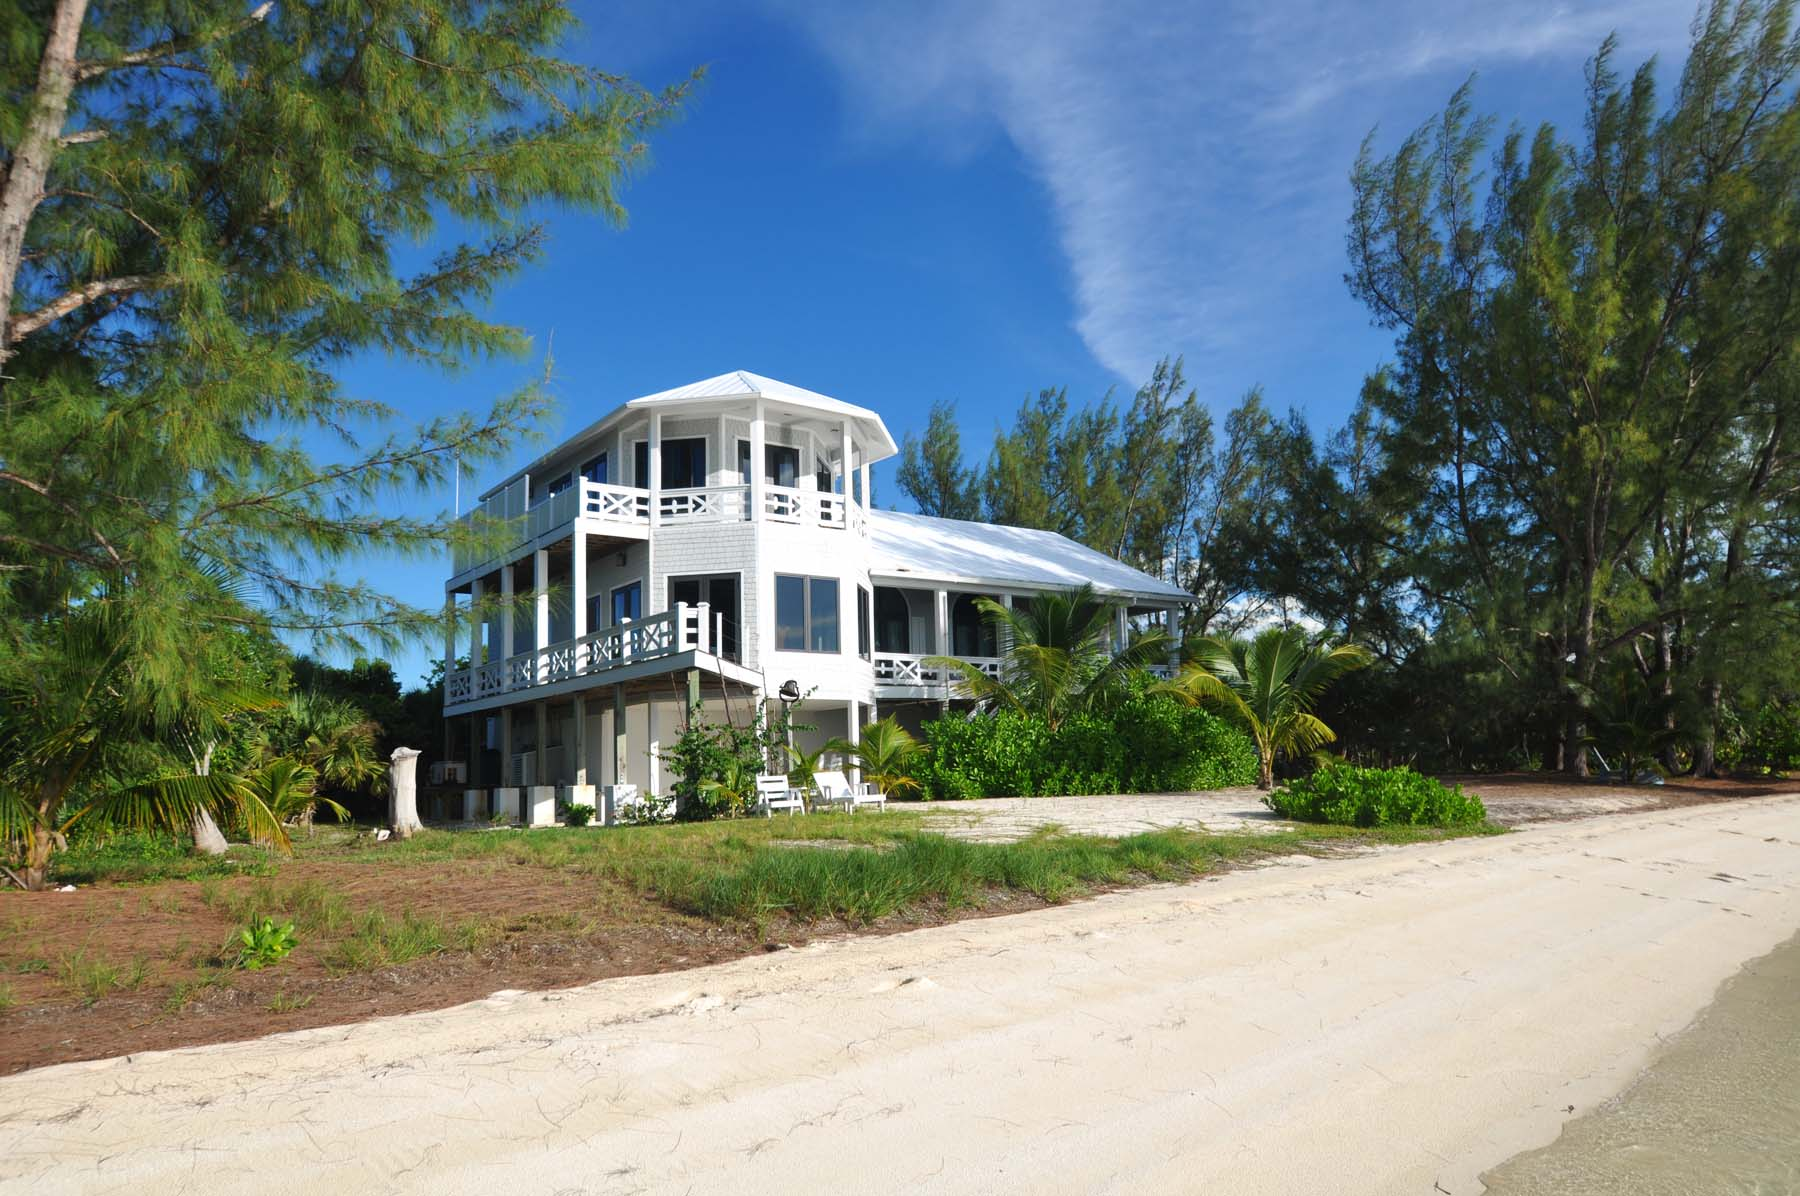 Single Family Home for Sale at Creme De La Coco Green Turtle Cay, Bahamas